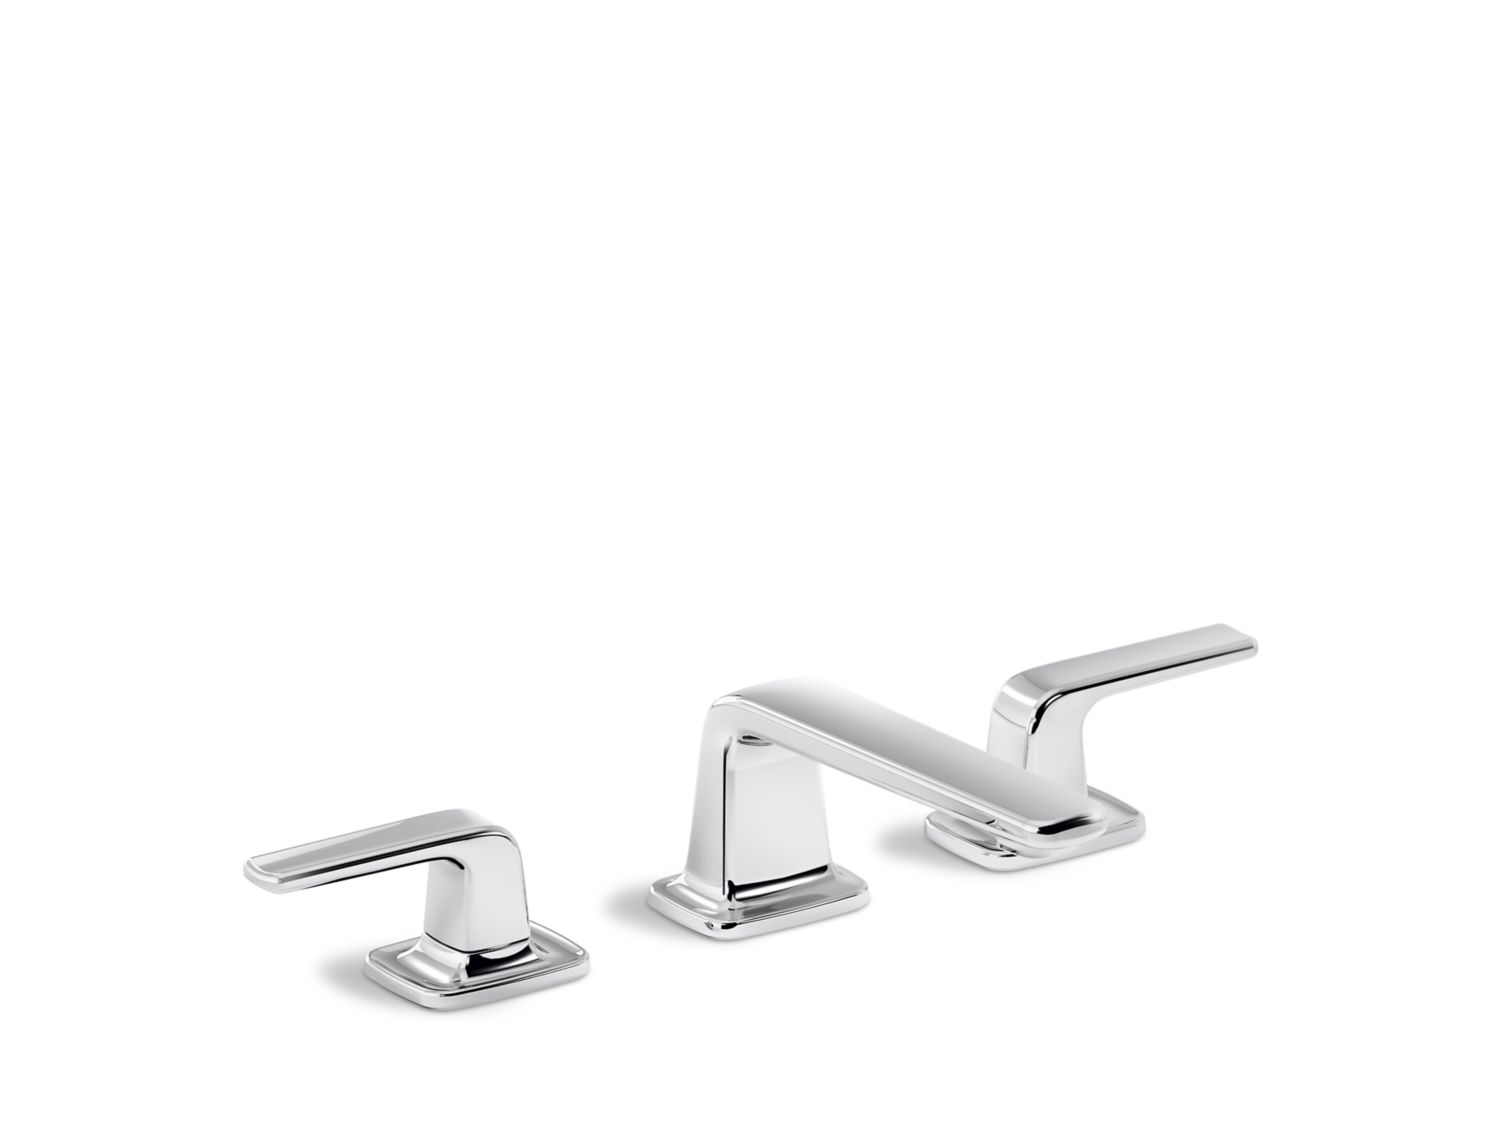 Glacier Bay Edgewood 8 in. Widespread 2 Handle High Arc Bathroom homedepot.com p Glacier Bay EdgewoodFaucet 300687600